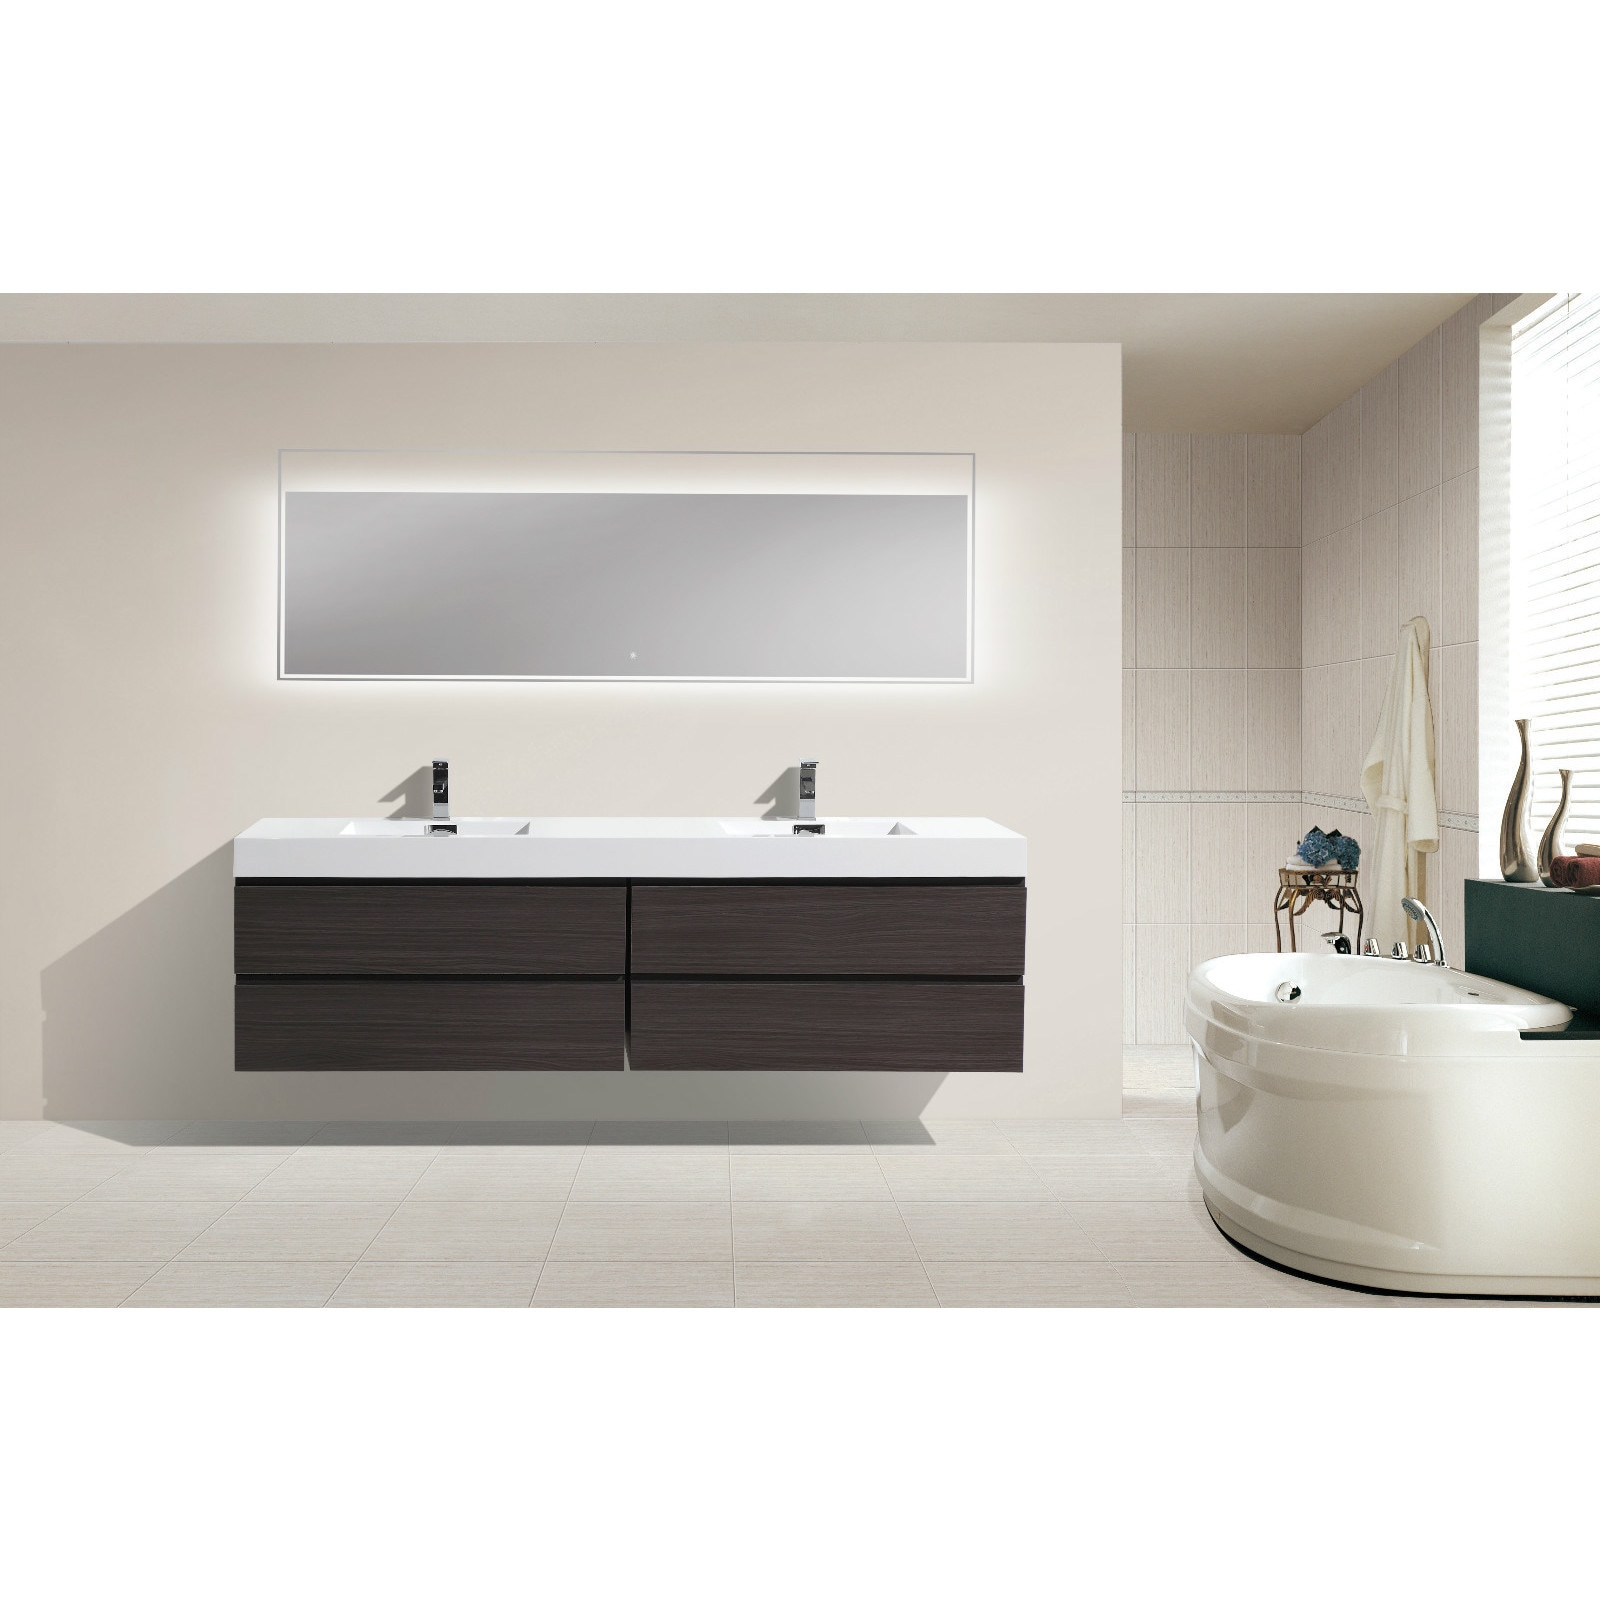 Shop Moreno Bath MOF 80 Inch Wall Mounted Modern Bathroom Vanity With Reinforced Acrylic Double Sink - On Sale - Free Shipping Today - Overstock.com - ...